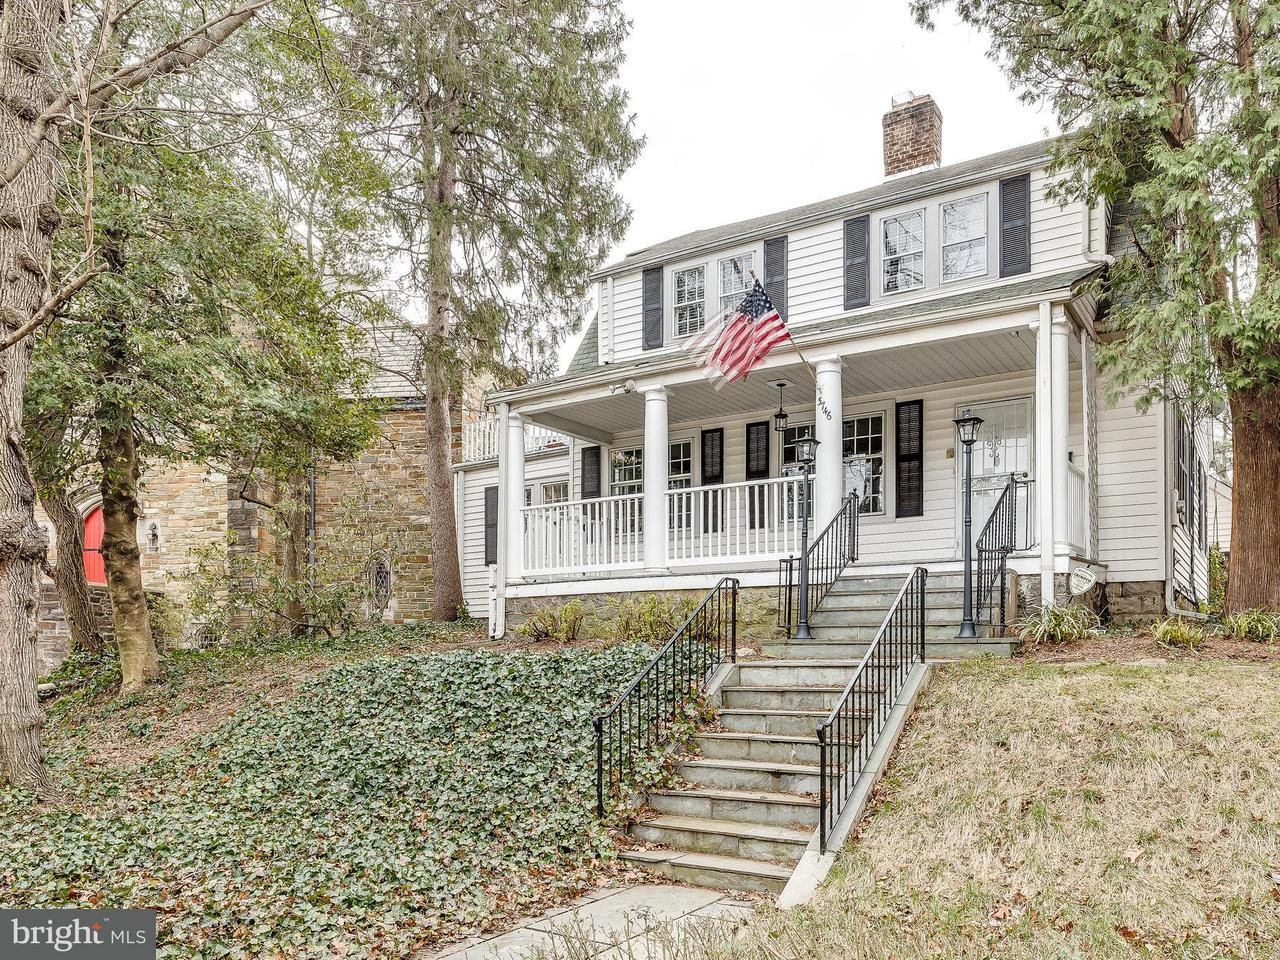 Other Residential for Rent at 3746 Jocelyn St NW Washington, District Of Columbia 20015 United States